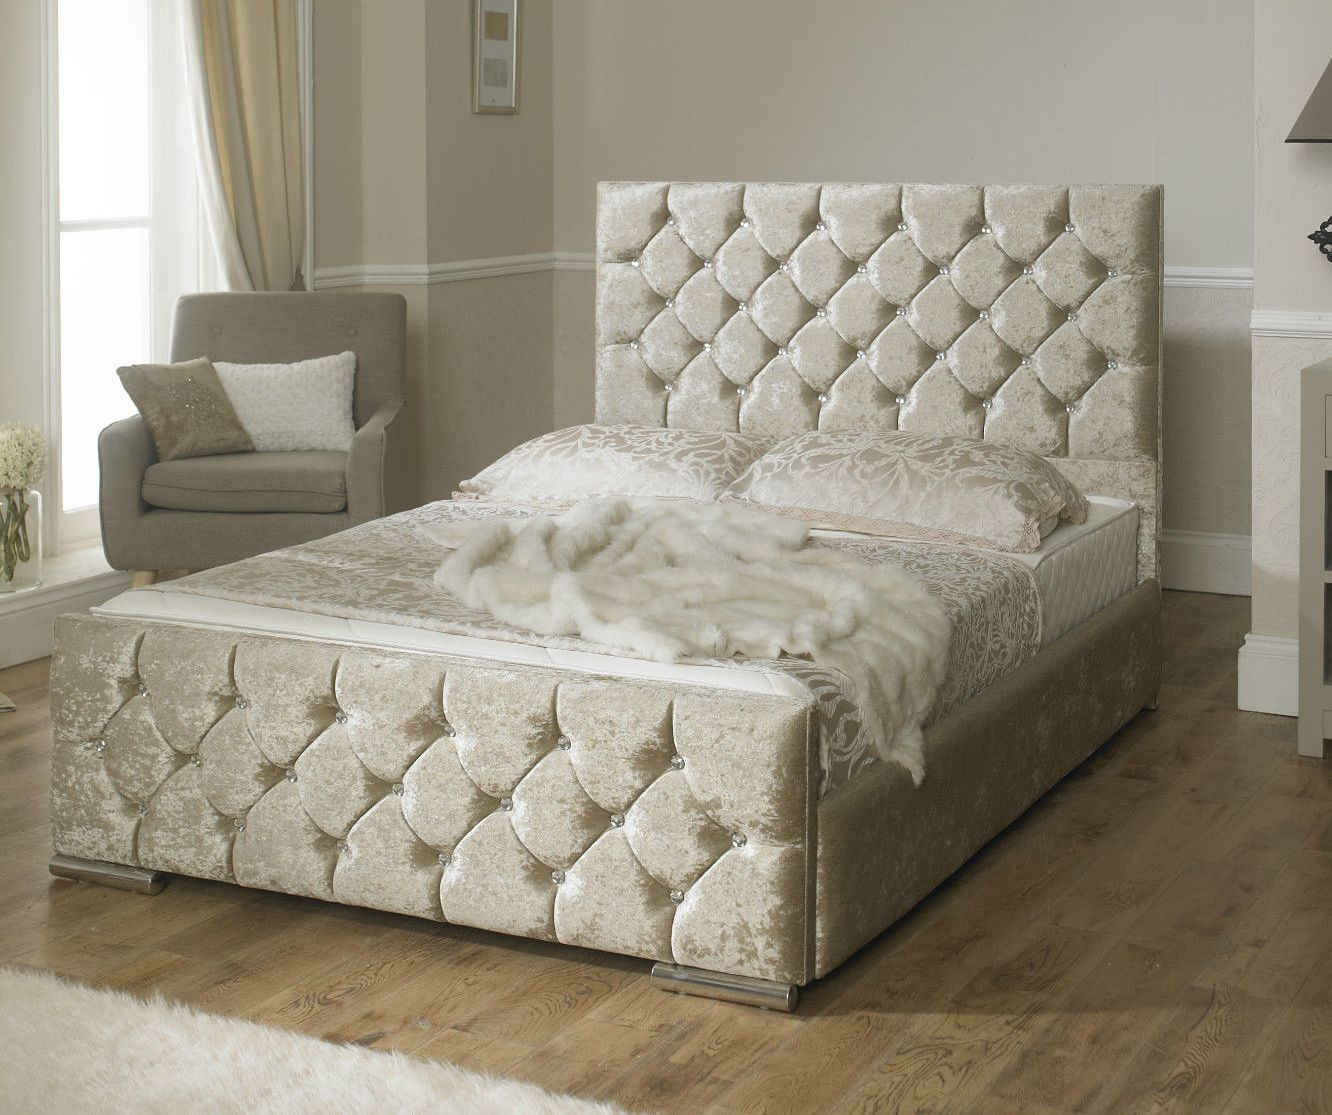 Monoco Bed Frame in Champagne,Silver Or Black Velvet With A Eligant Crystal Finish